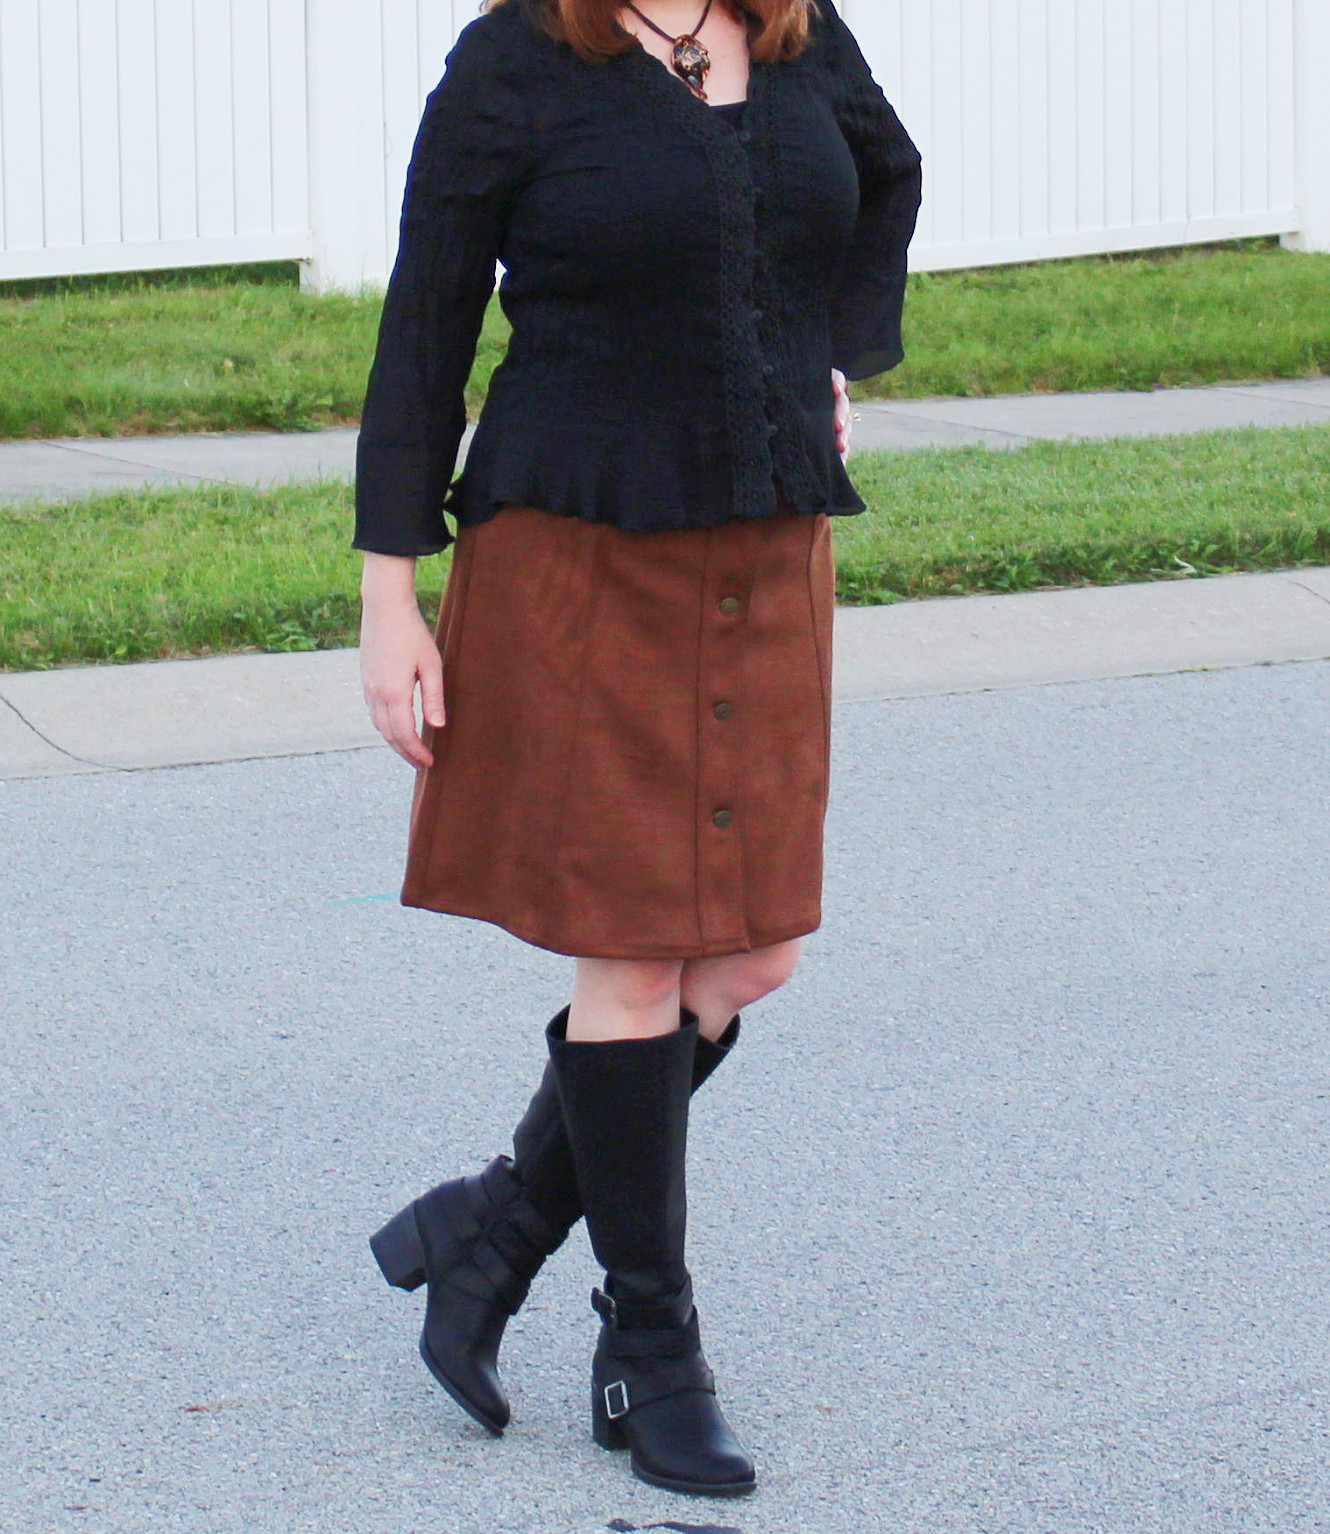 Lace Black Top, Suede Skirt, And Black Boots